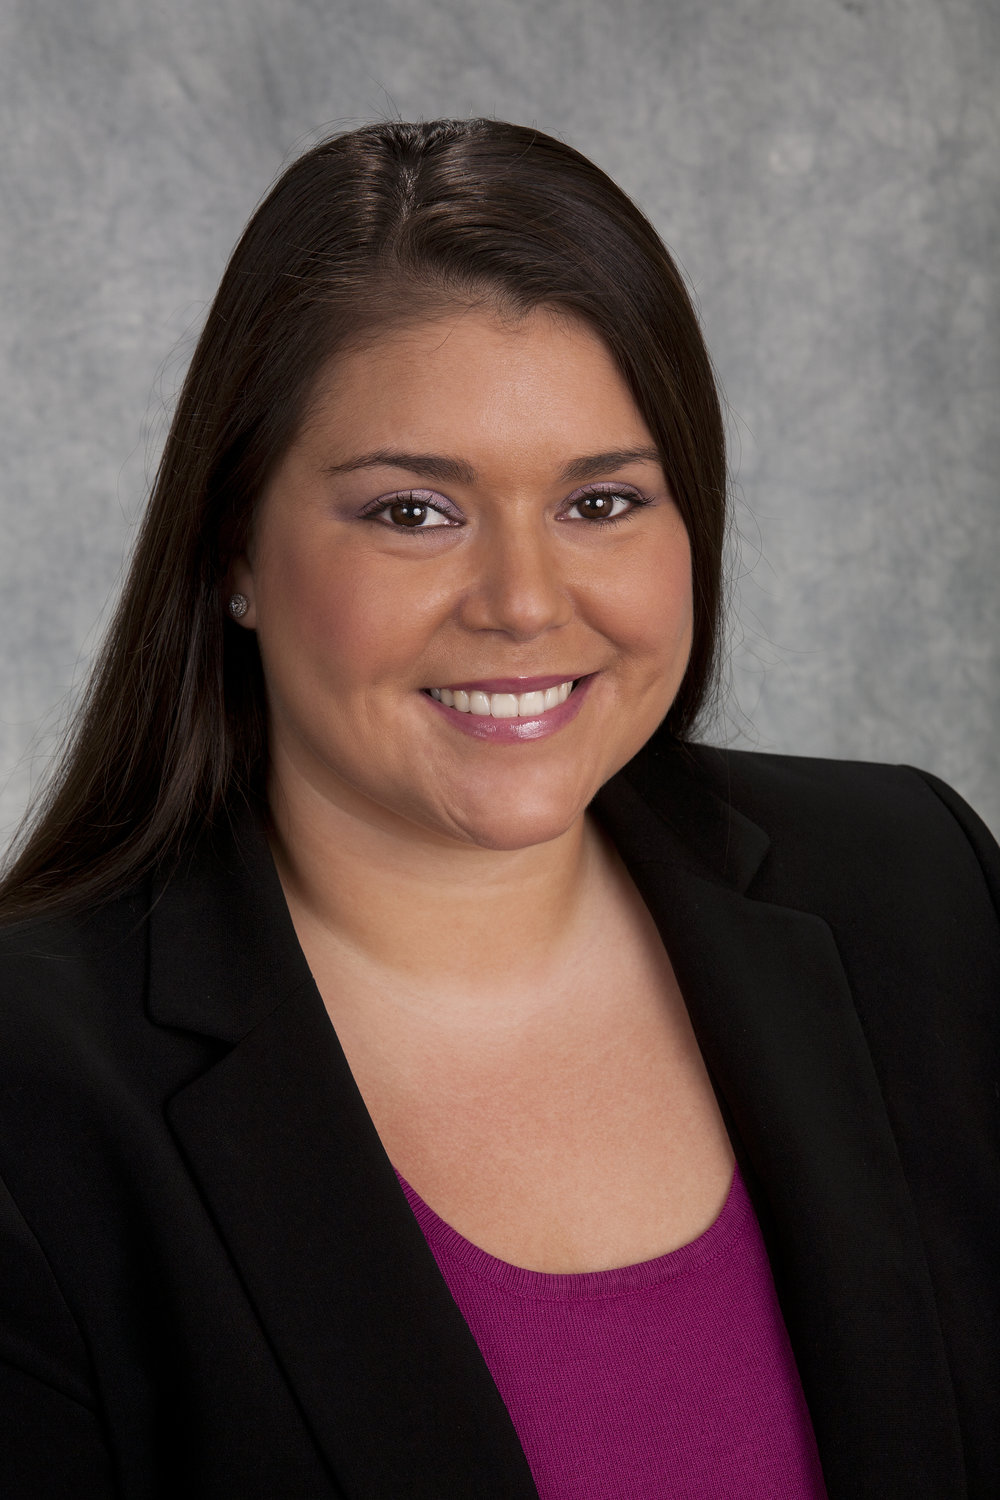 Christyna M. Torrez   Upon graduating from law school, Christyna joined the firm as an associate attorney after having spent the previous five summers (2002 - 2006) working at the firm as an intern and summer associate.